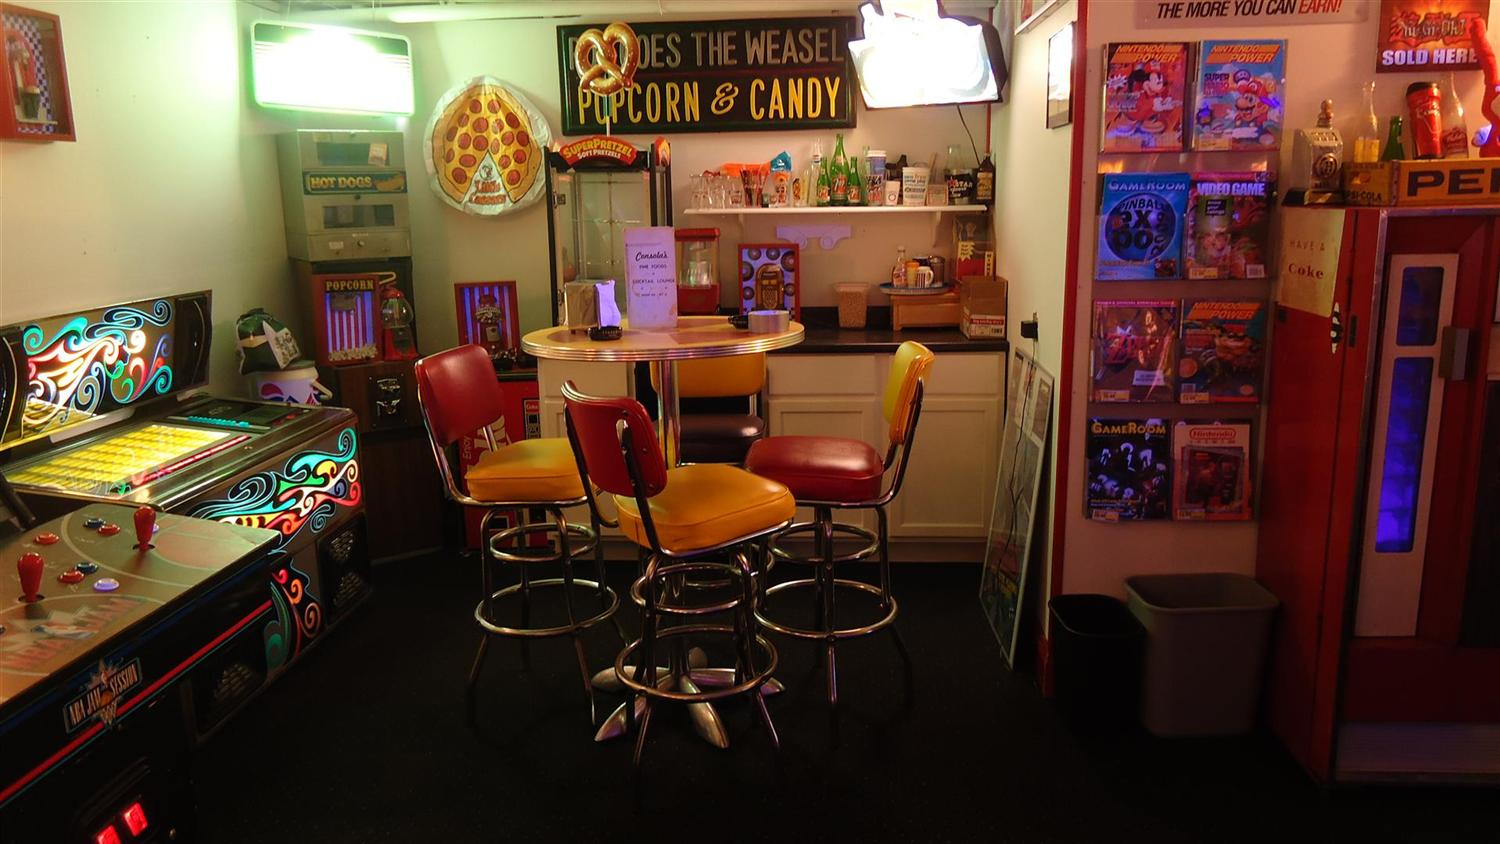 It's been more than two decades since video game arcades were a thing, but you can still find your favorite arcade games on the mac! Brian's Basement Arcade Bliss - A Gameroom Showcase